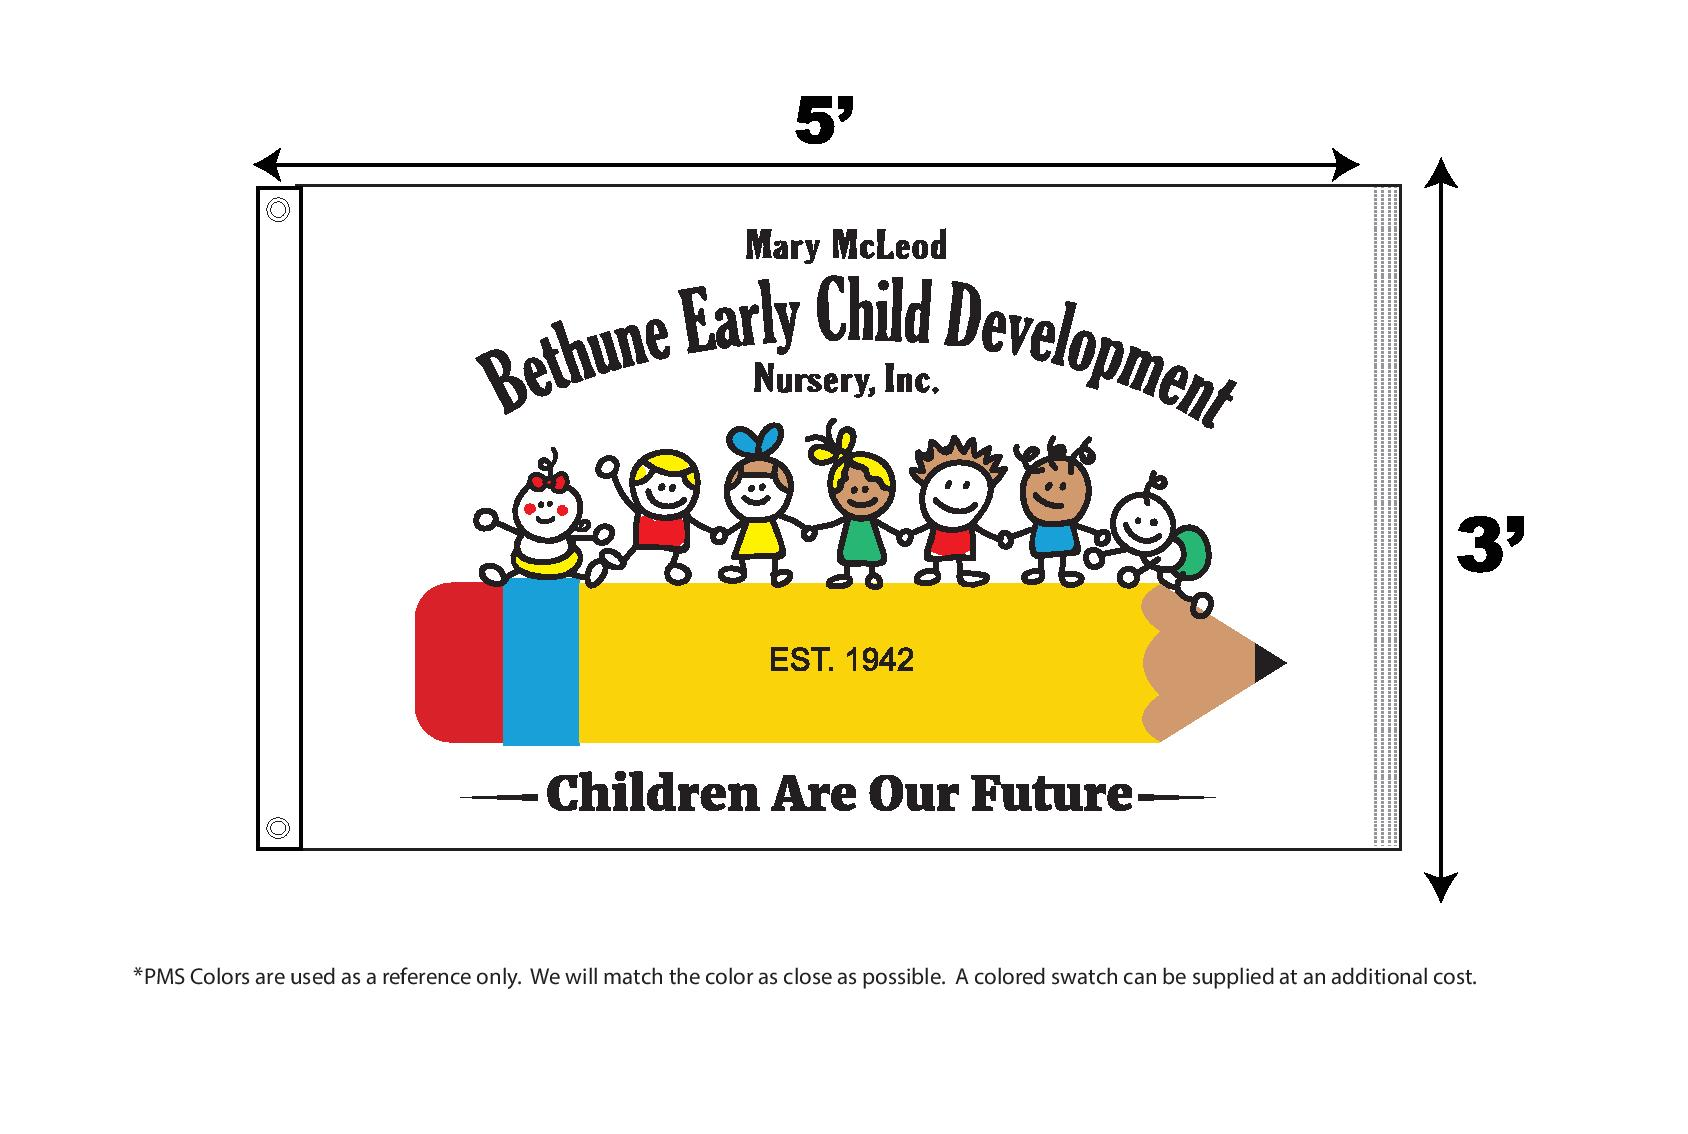 Bethune Early Child Care